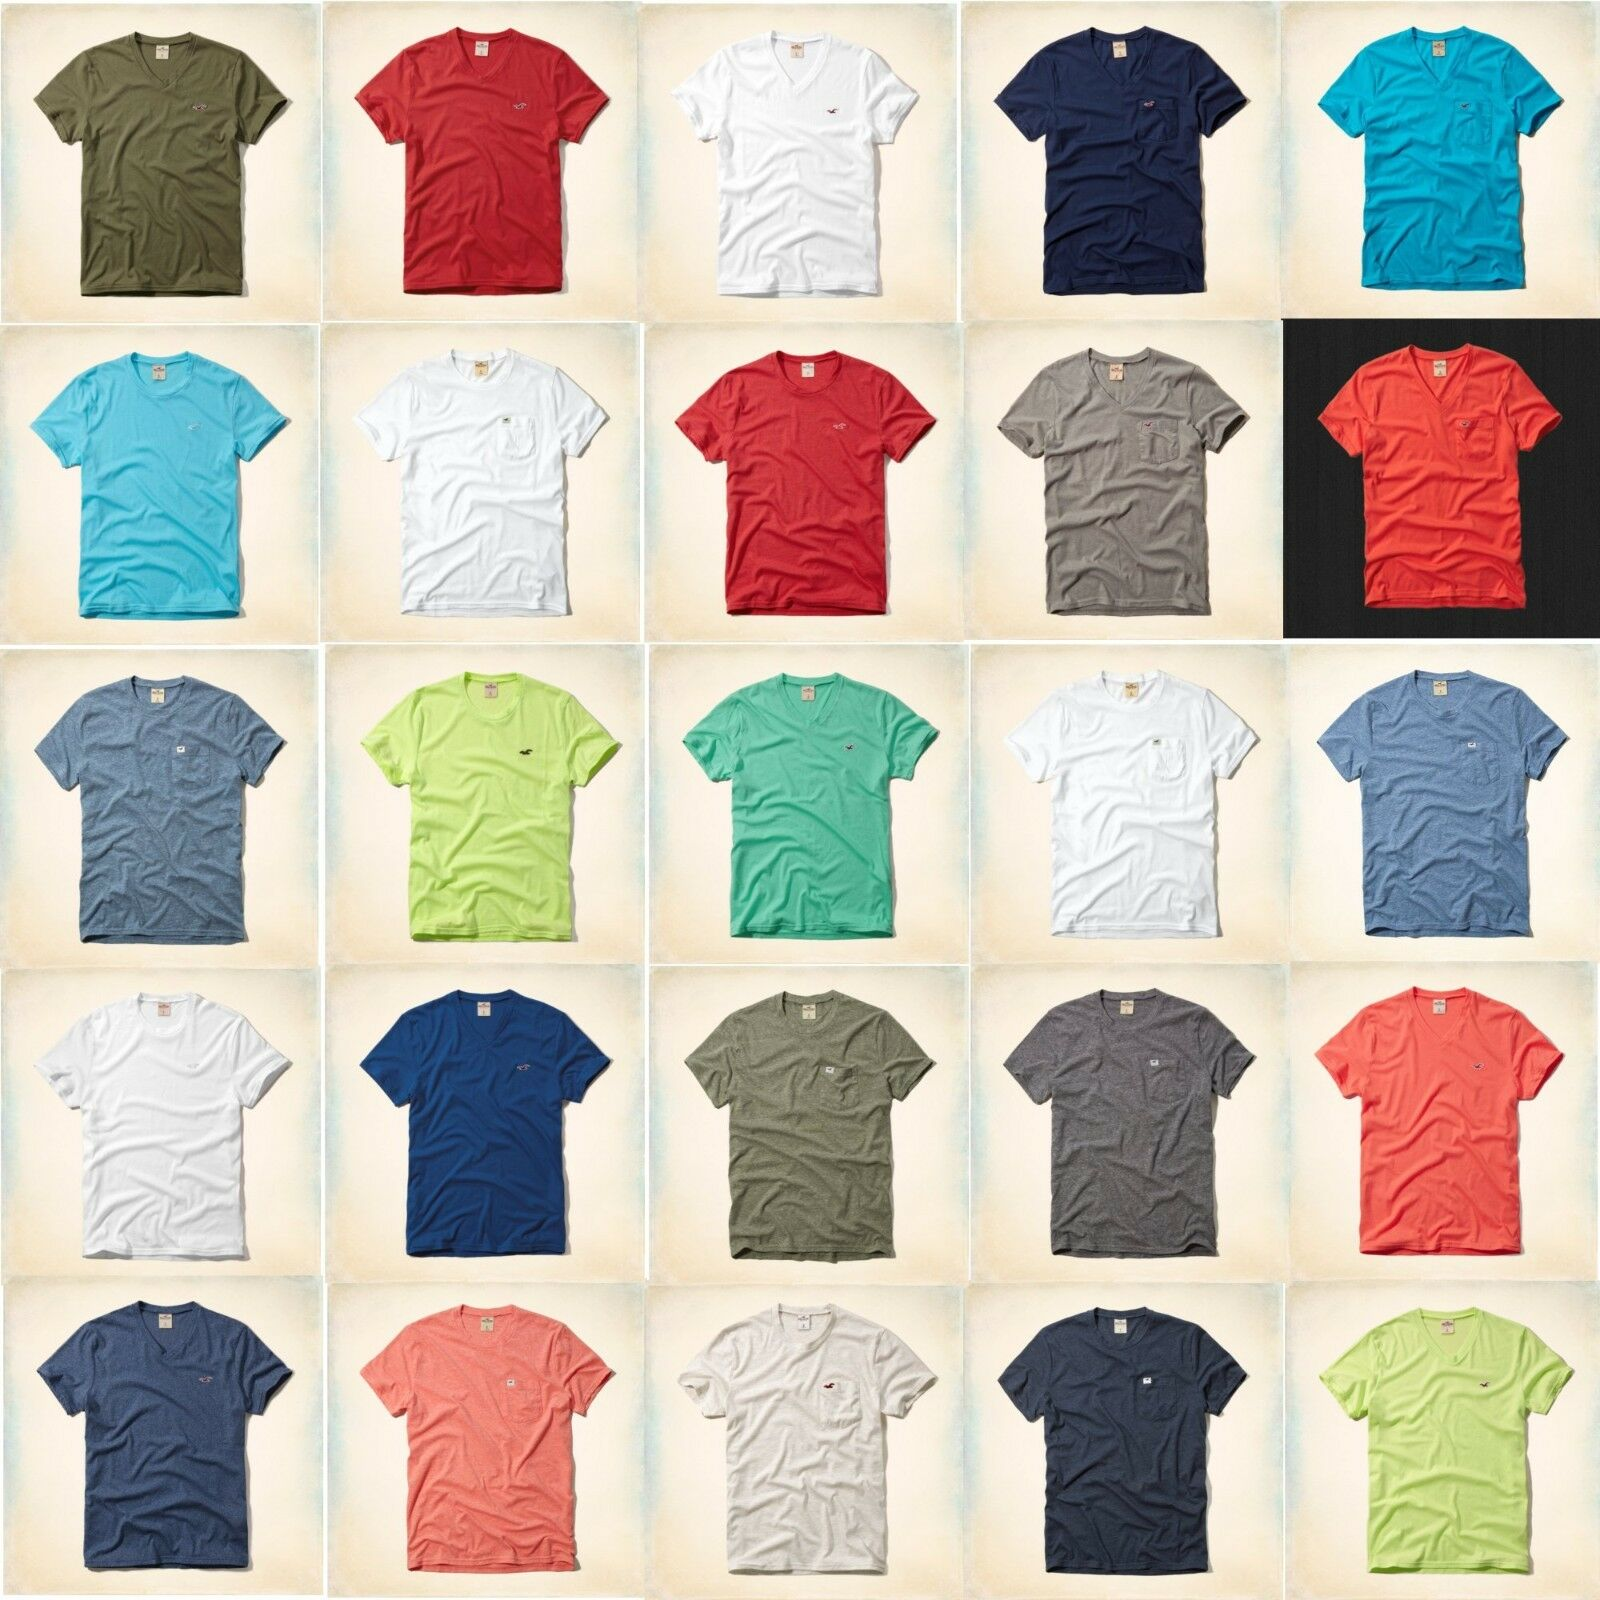 Nwt Hollister Co. By Abercrombie Men's T Shirt Solid Colors ...